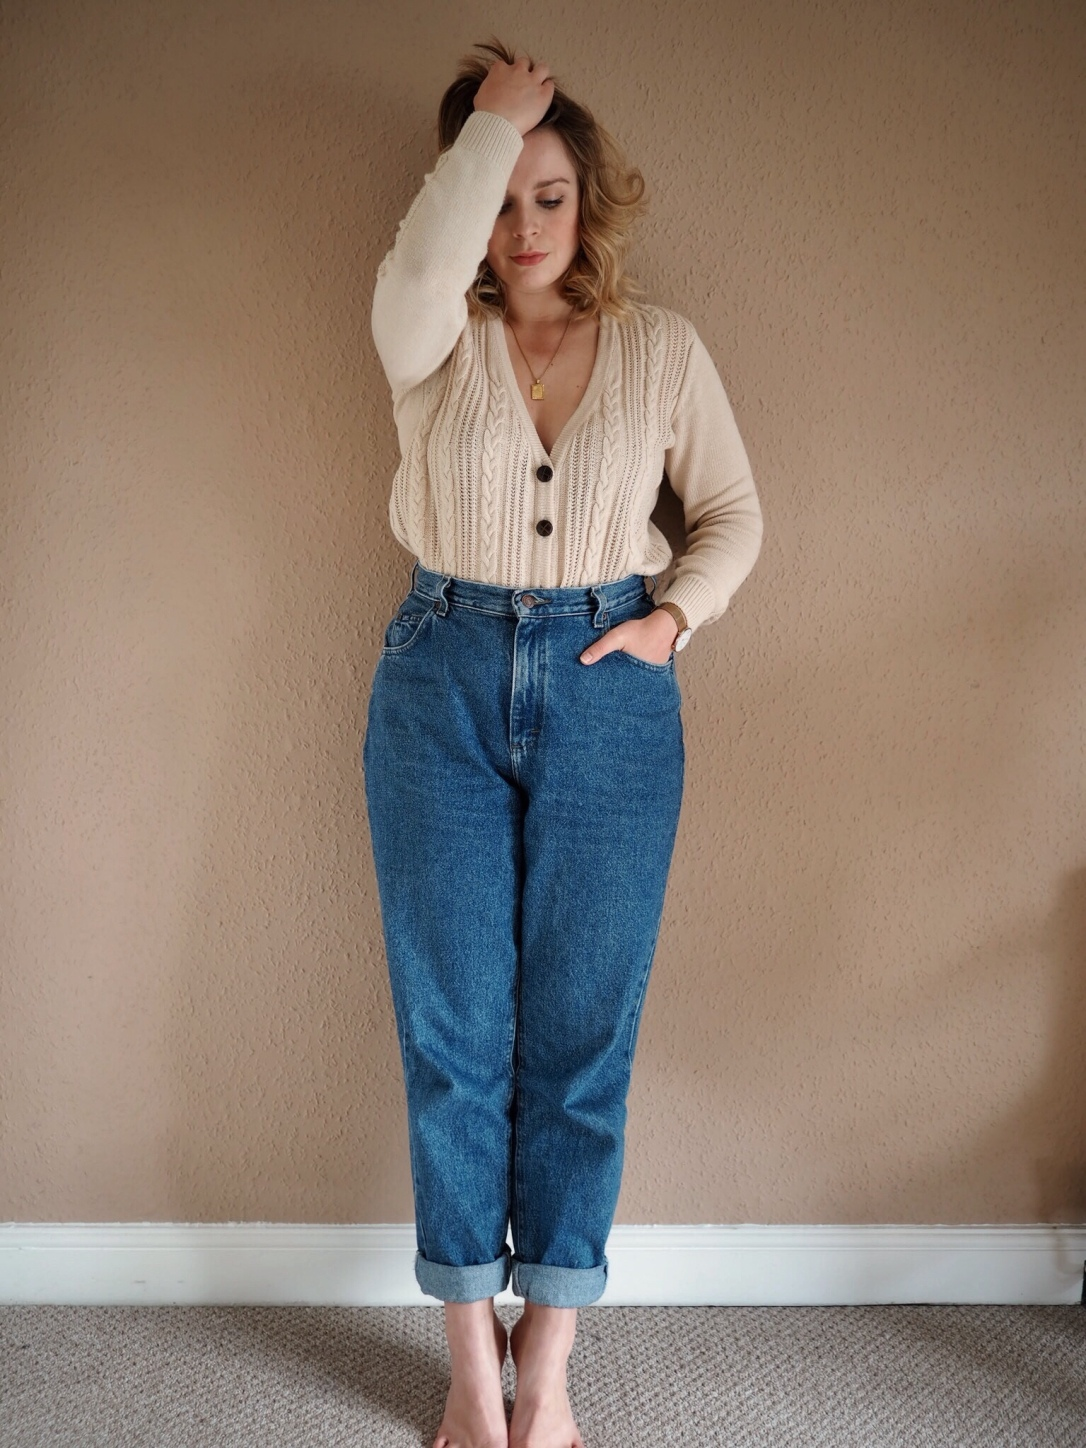 Vintage jeans and cable knit cardigan